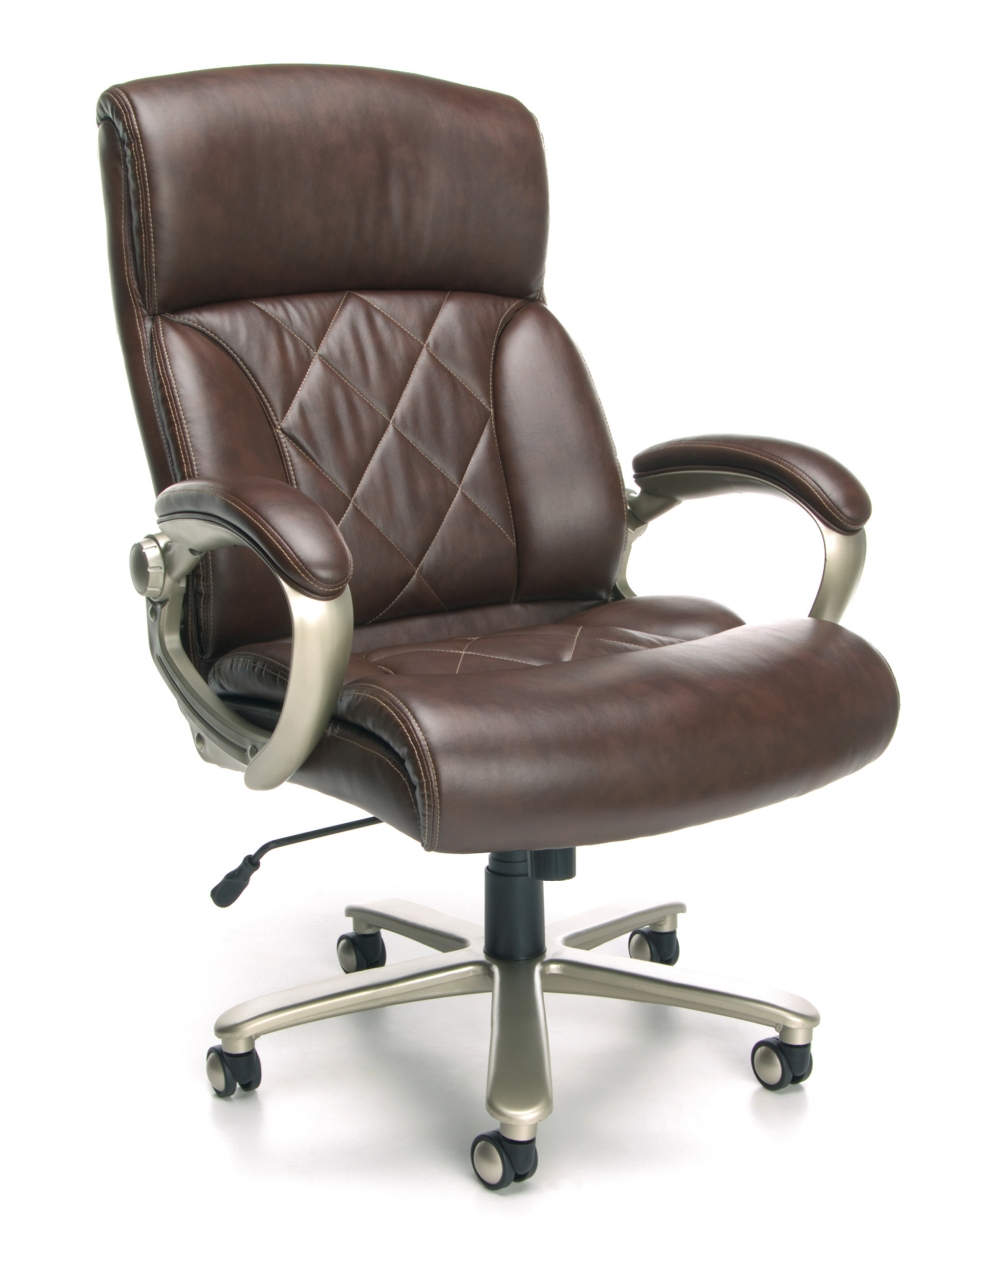 big-and-tall-office-chairs-heavy-duty-executive-chair.jpg